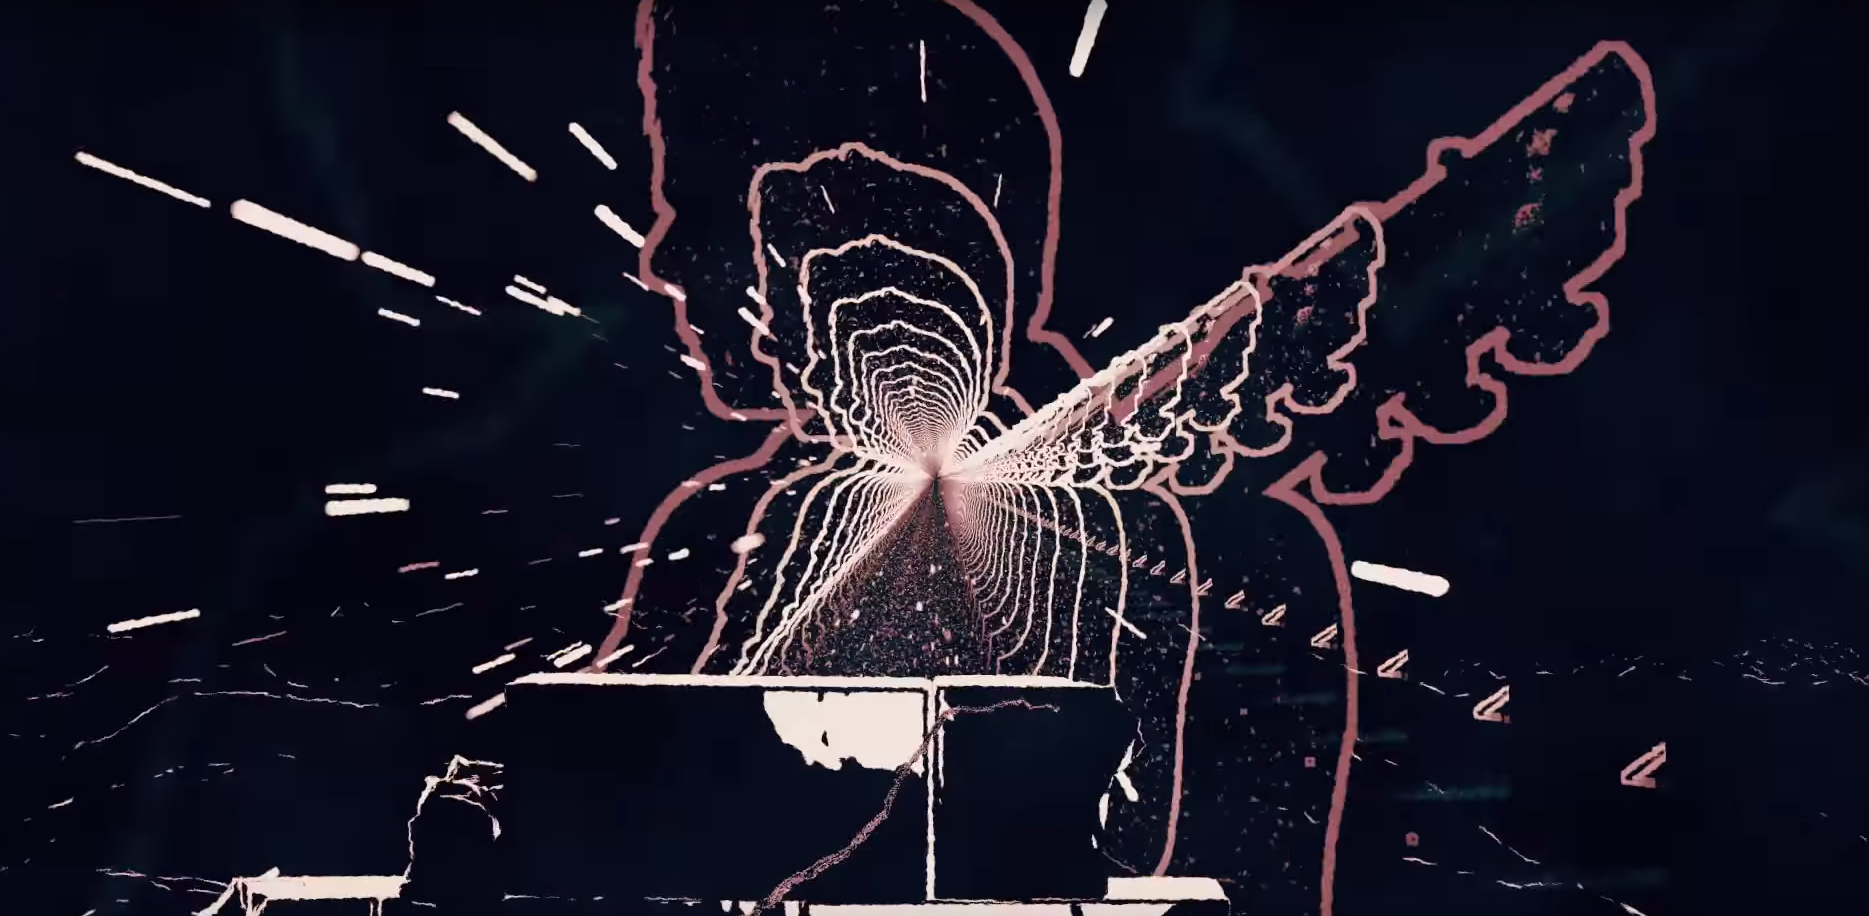 Check Out The Amazon's Amazing Animated Music Video